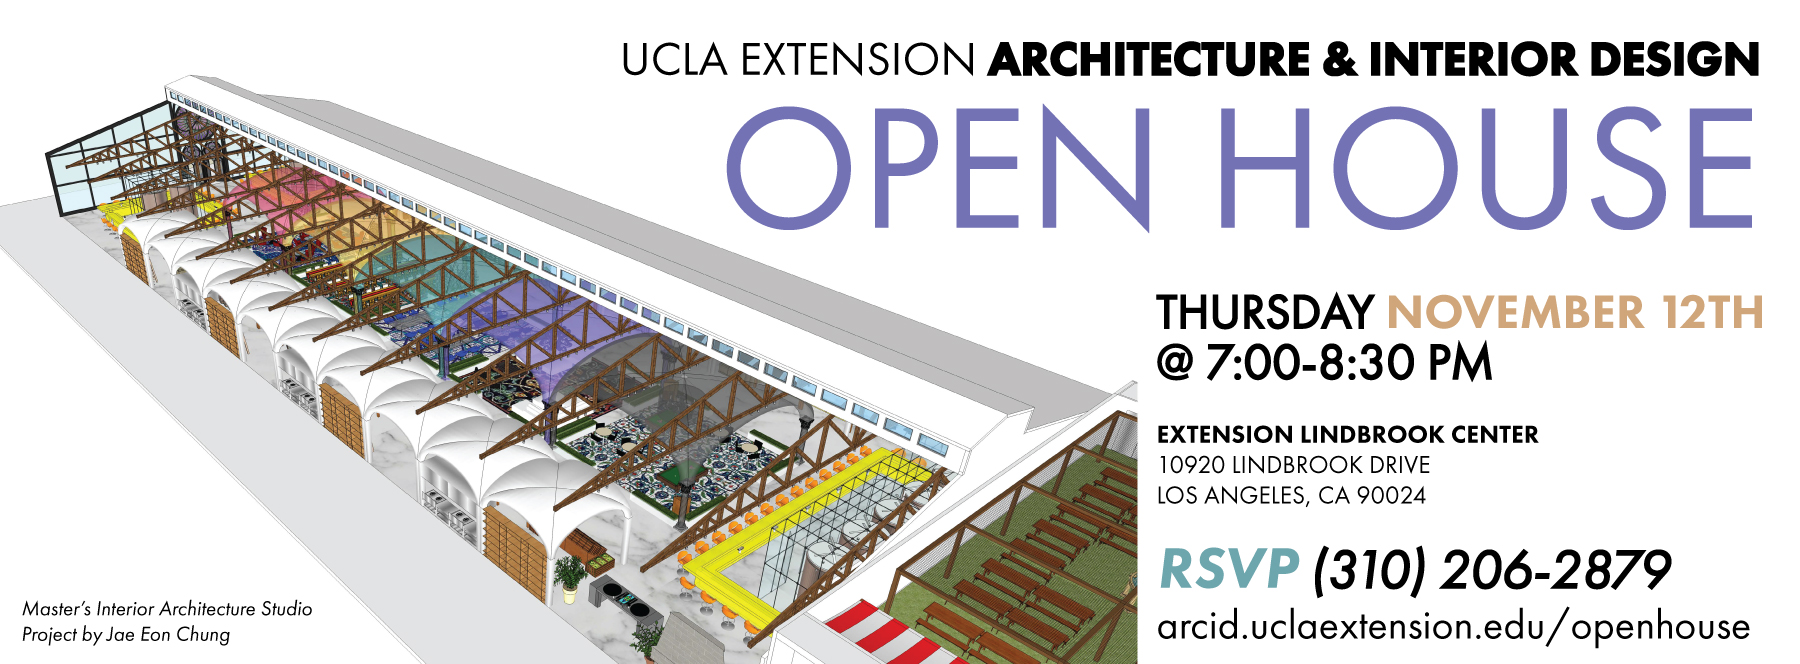 Superior Get Ready For The UCLA Extension Arc+ID Information Session!